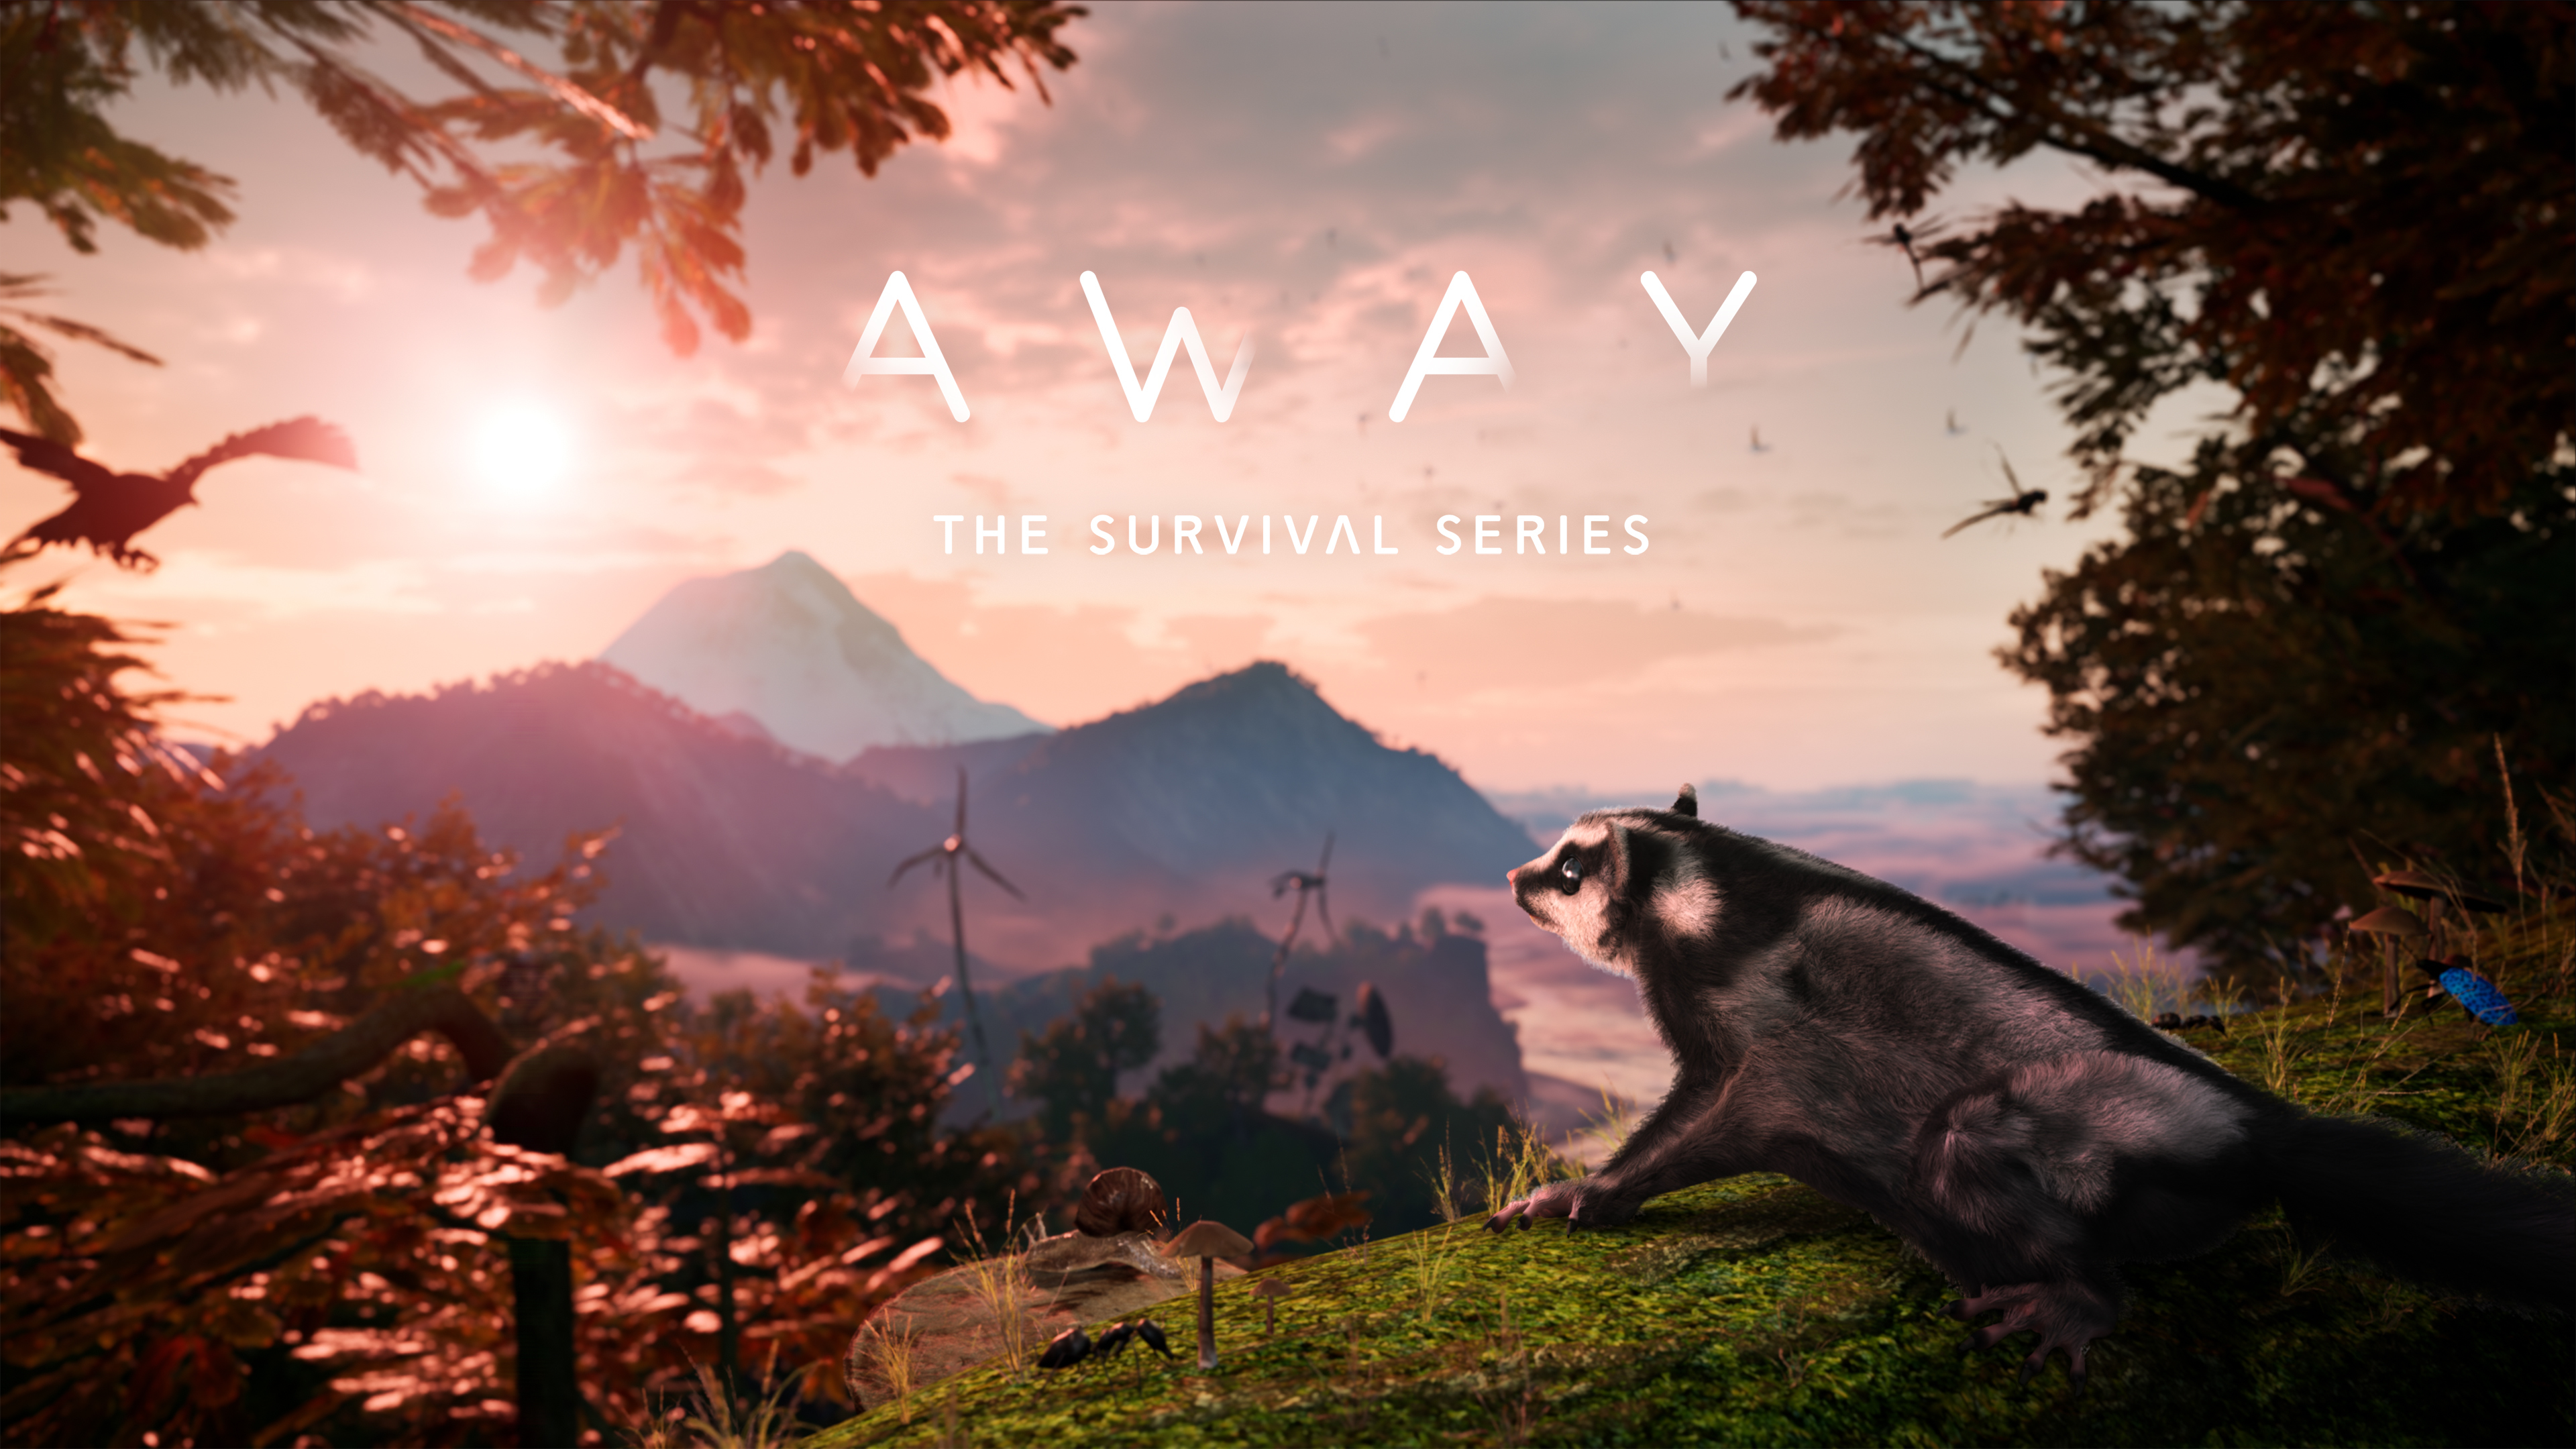 Story-based sugar glider adventure AWAY: The Survival Series is coming to PlayStation 5 in late Summer